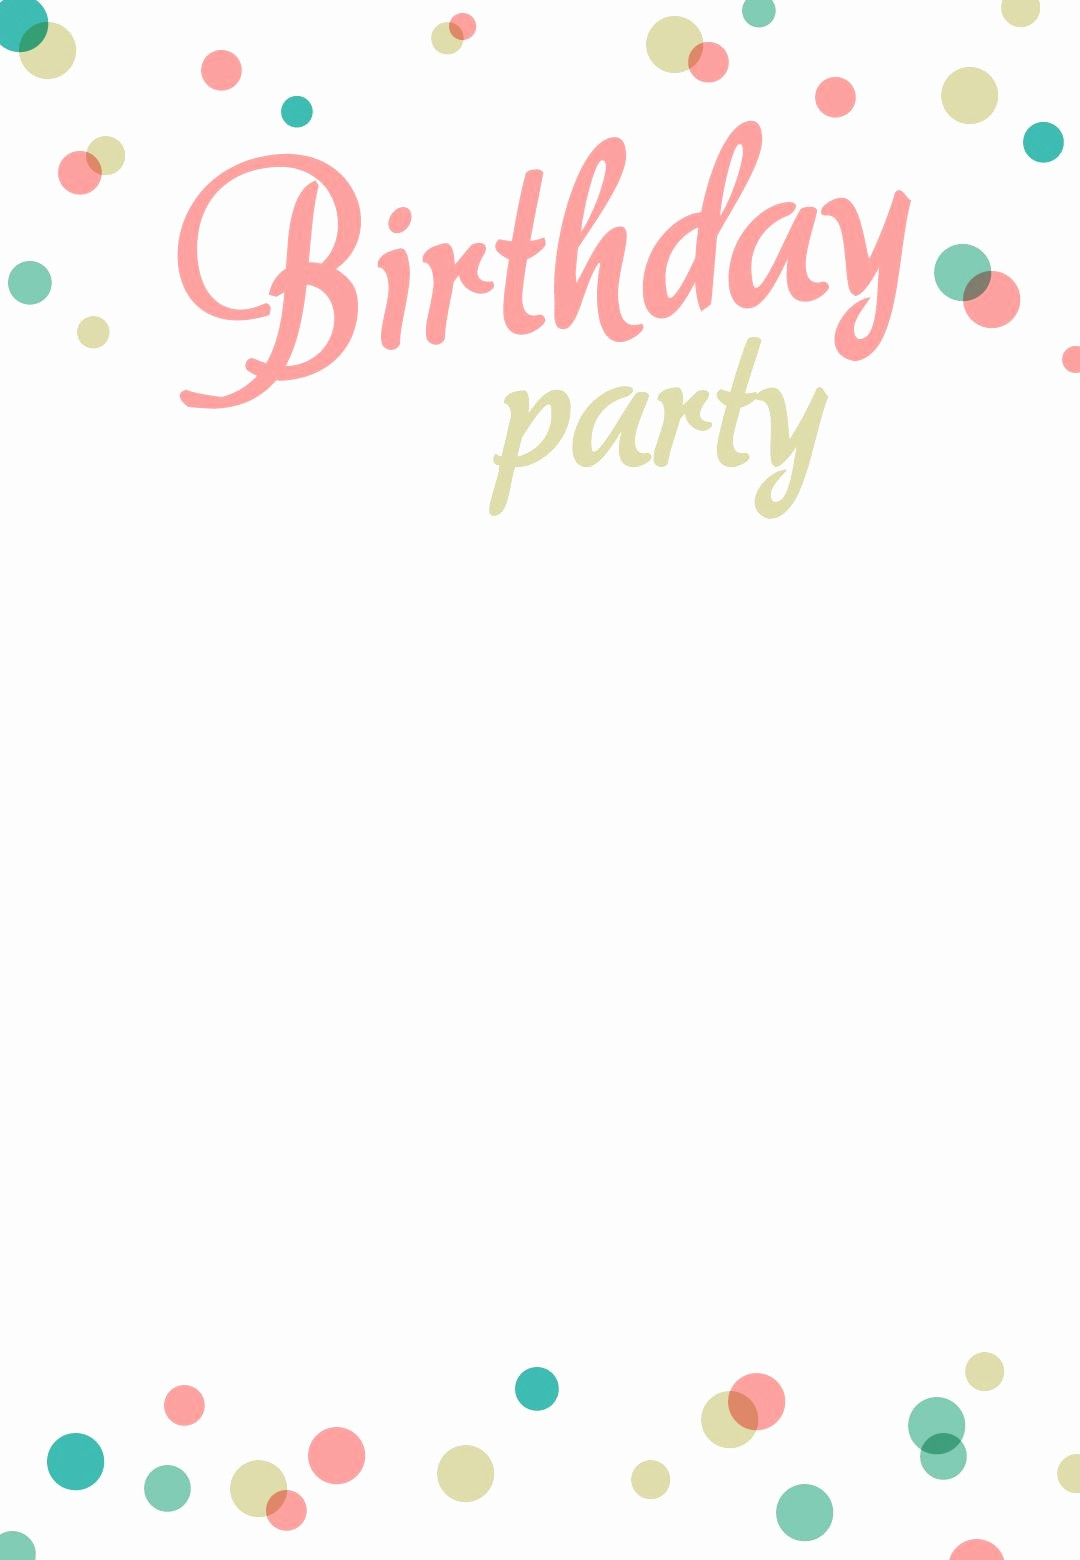 Free Printable Party Invitations Templates Unique Birthday Party Invitation Free Printable